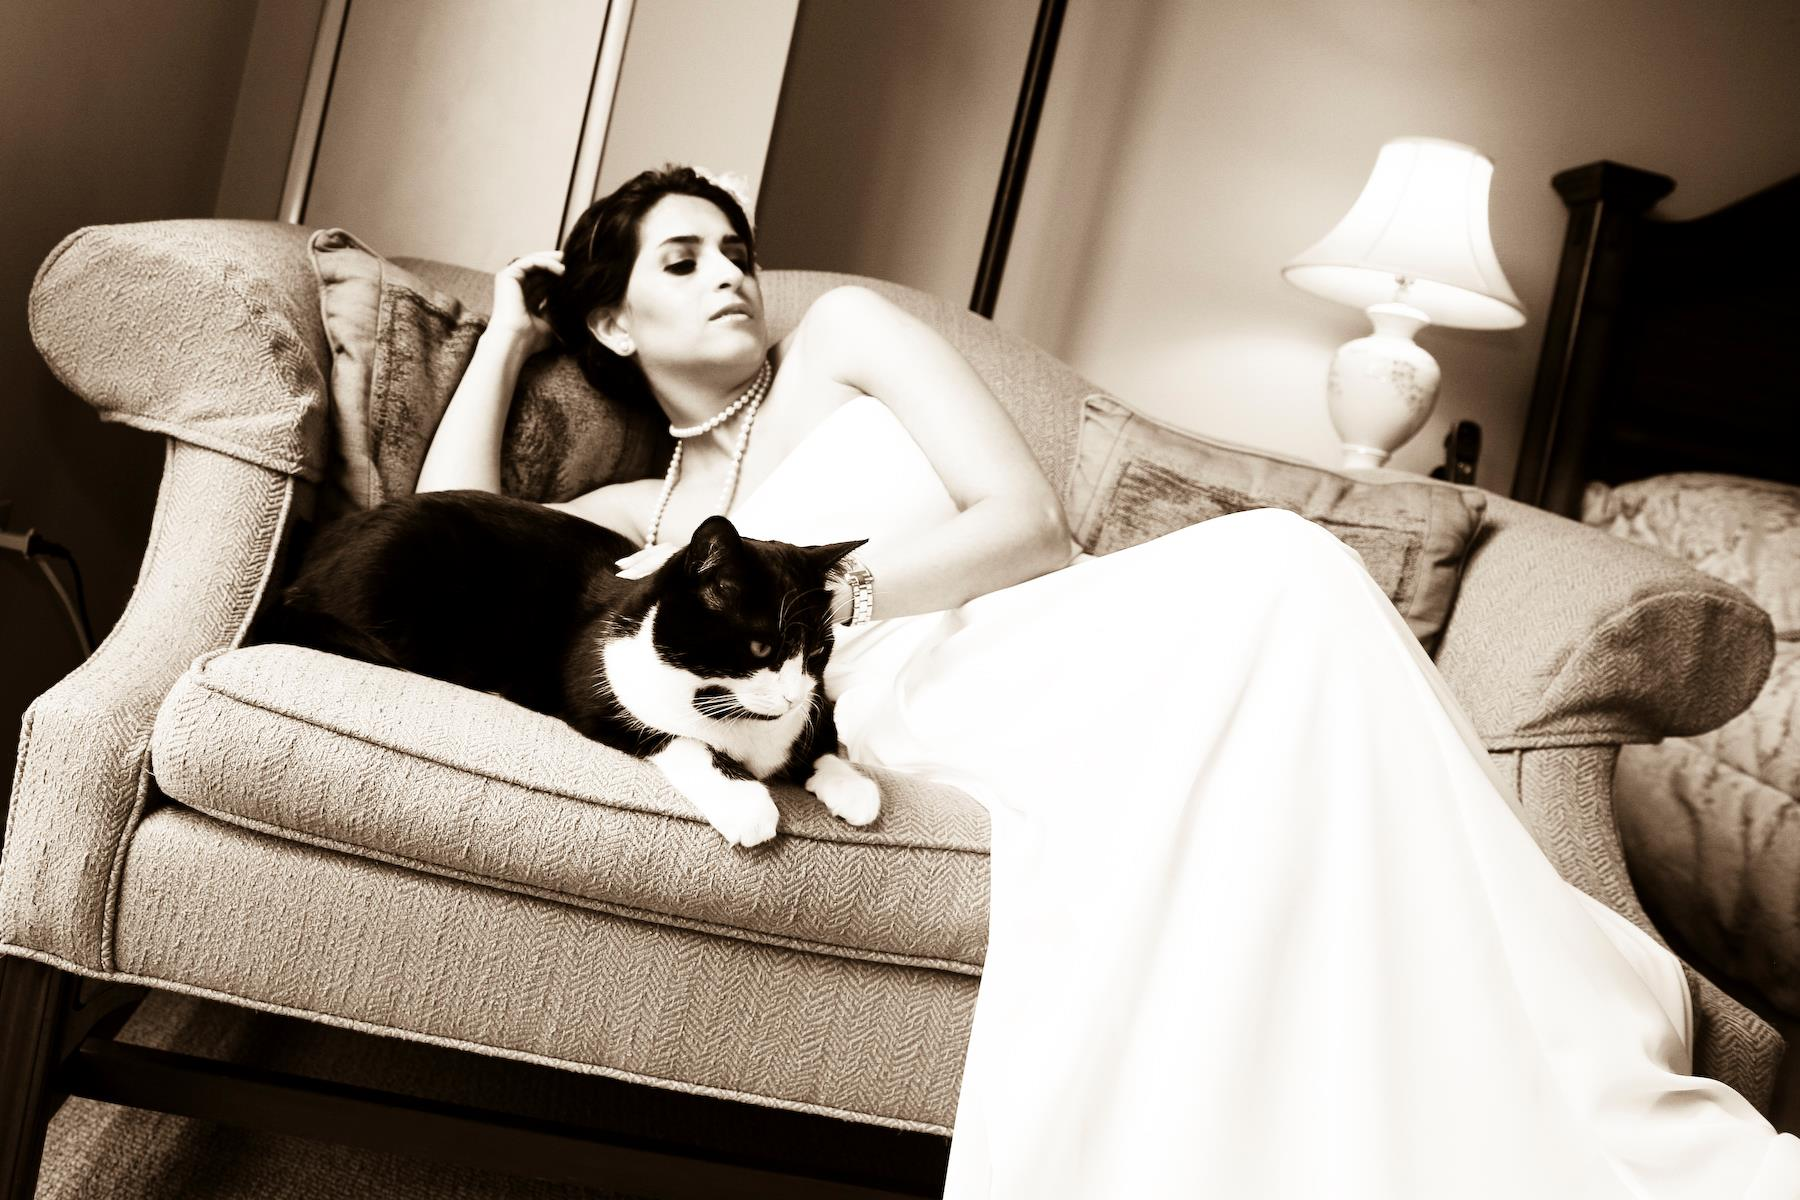 Bride and her kitty cat on couch